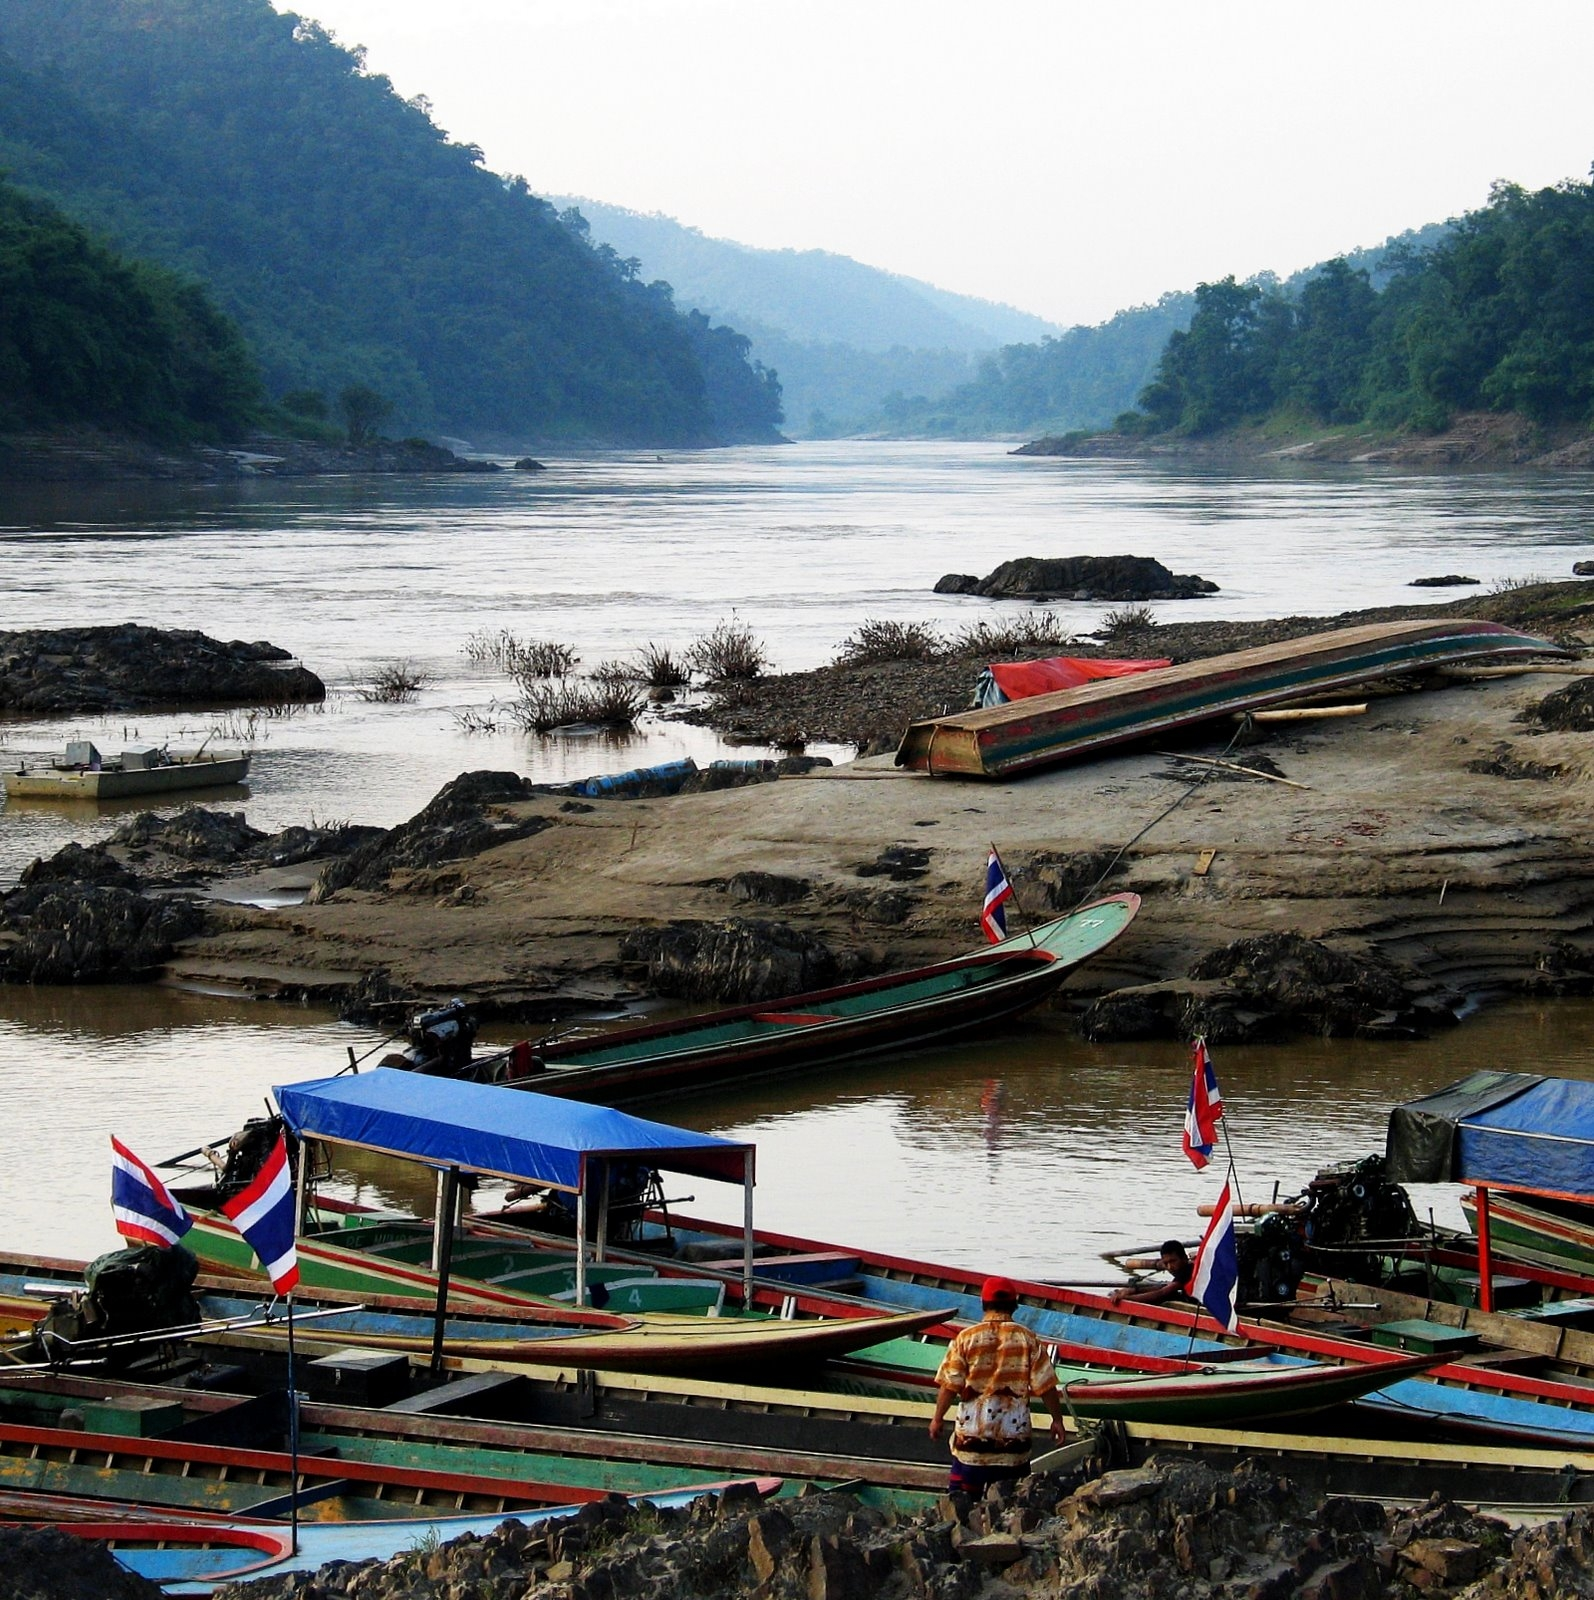 To the Source of the Salween River